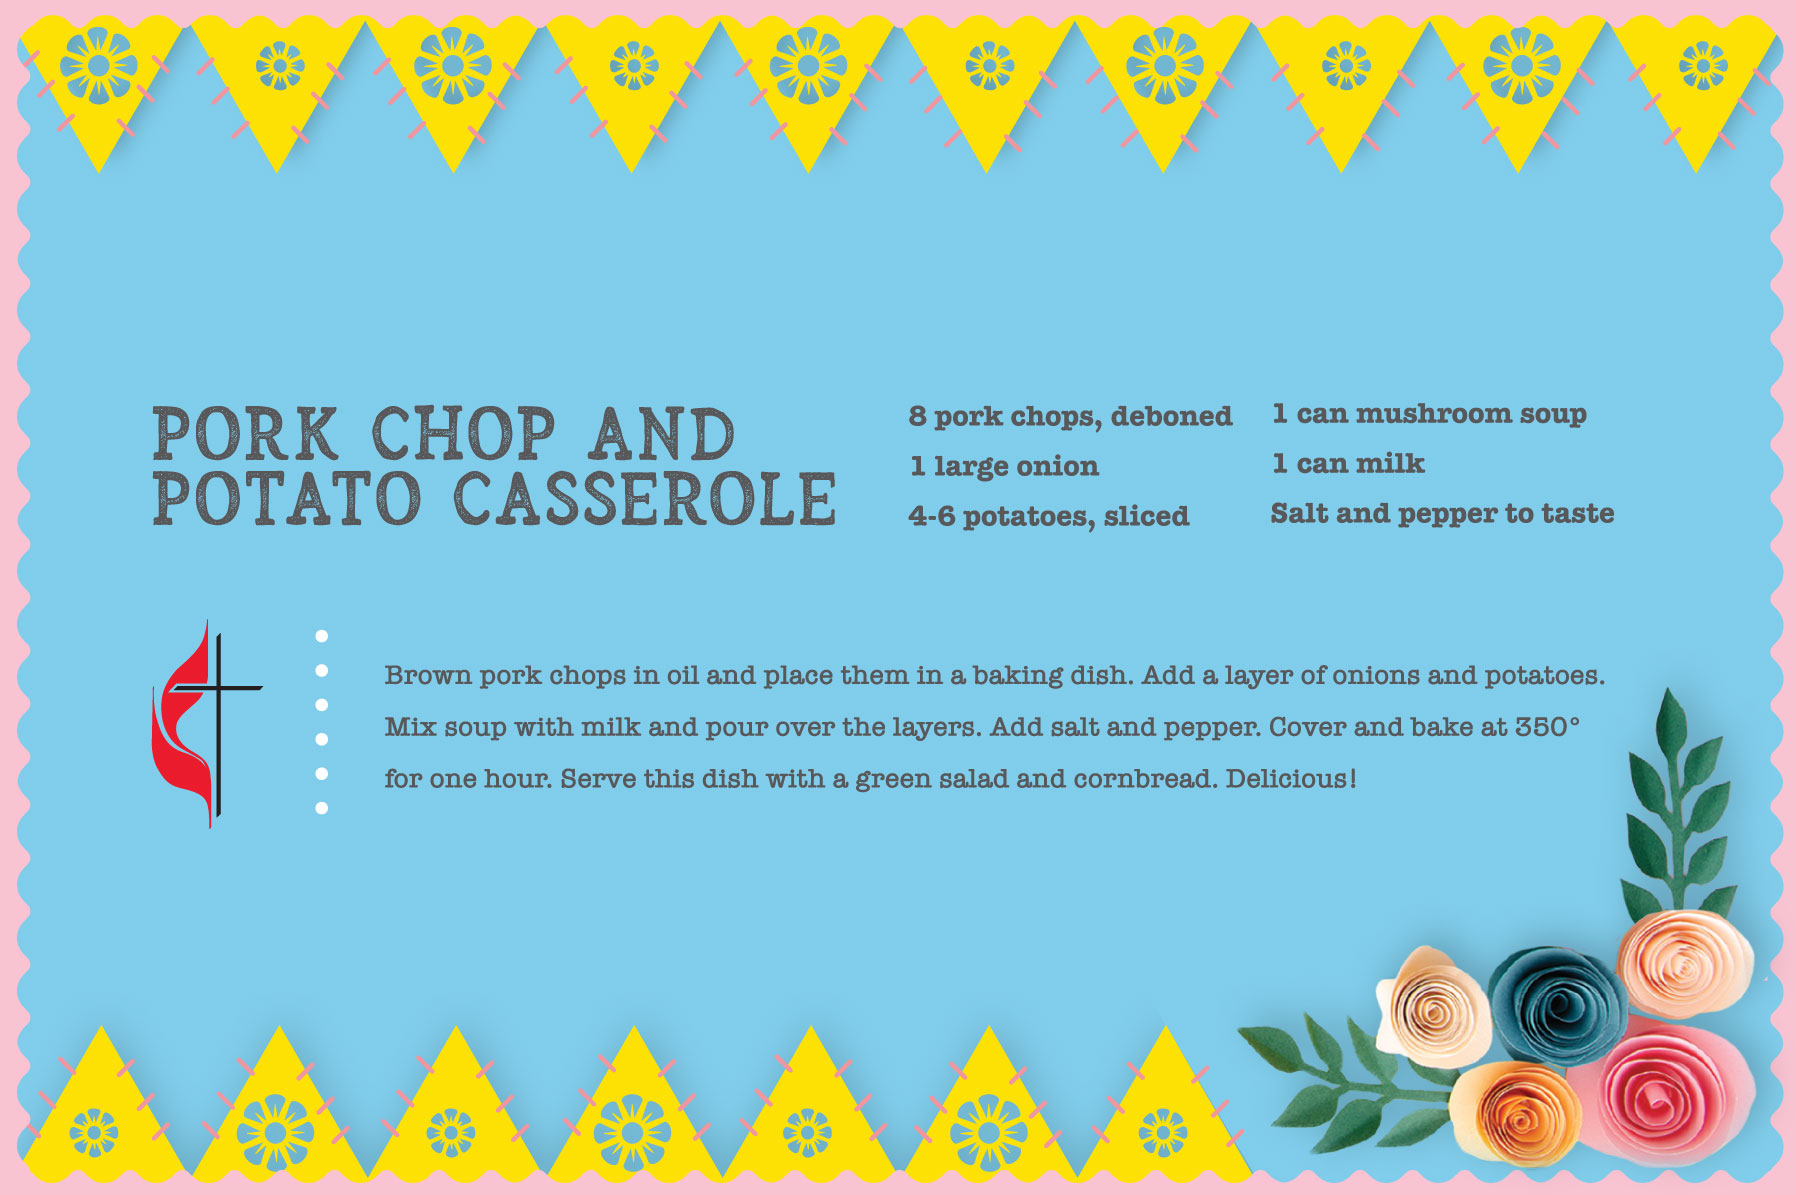 Pork chop and potato recipe for Easter. Design by Sara Schork for United Methodist Communications